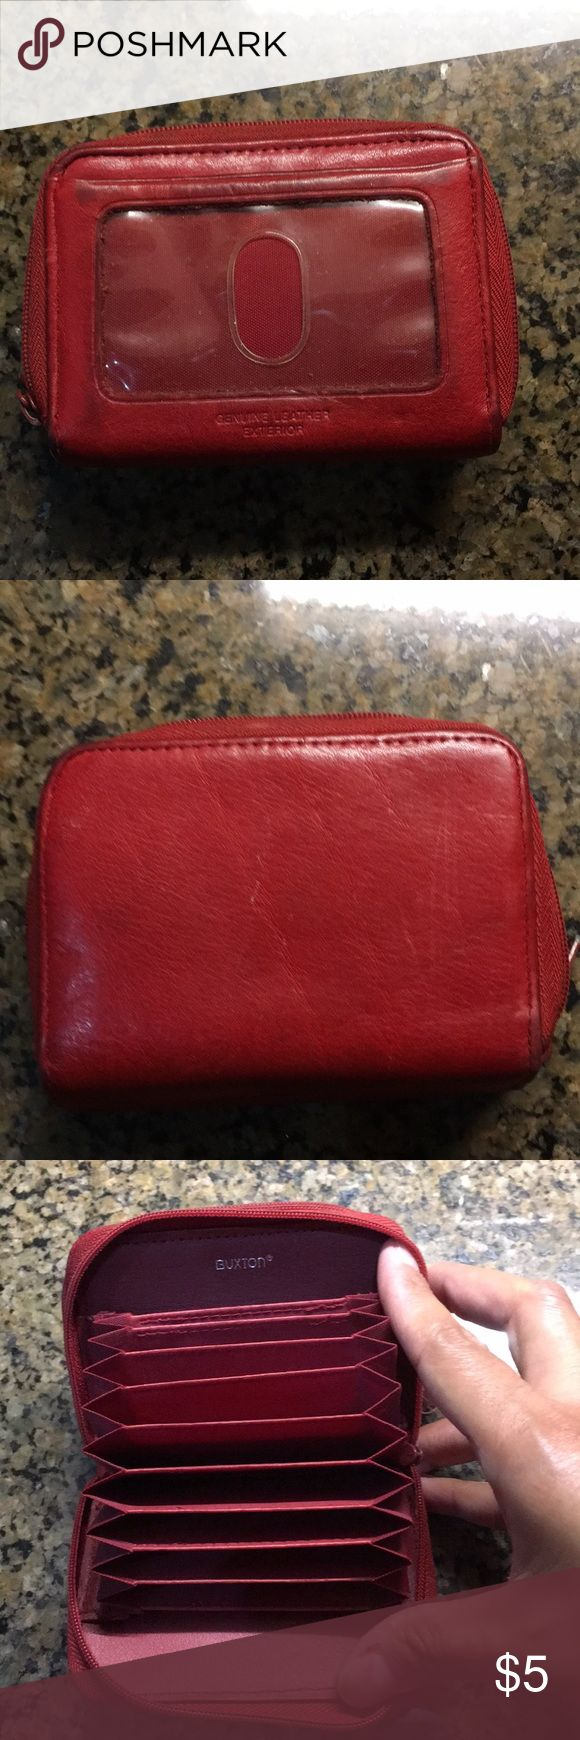 Small wallet Good used condition, red leather Buxton wallet. Perfect to store ID, cards and enough space for some cash and coins. Buxton Accessories Key & Card Holders